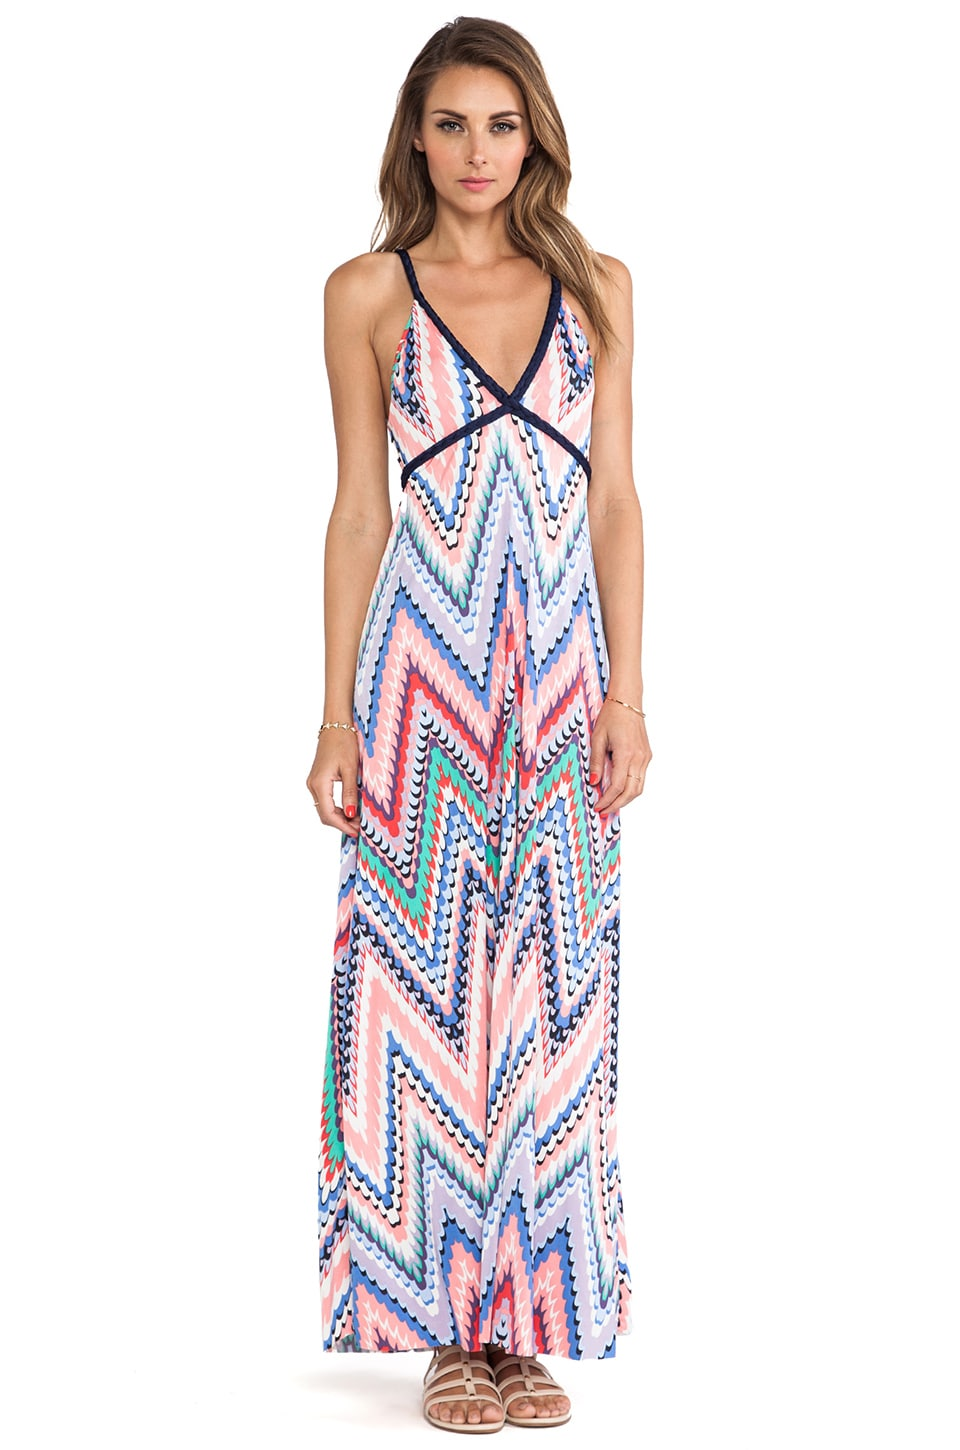 T-Bags LosAngeles Wrap Around Tie Maxi Dress in Zig Zag Multi